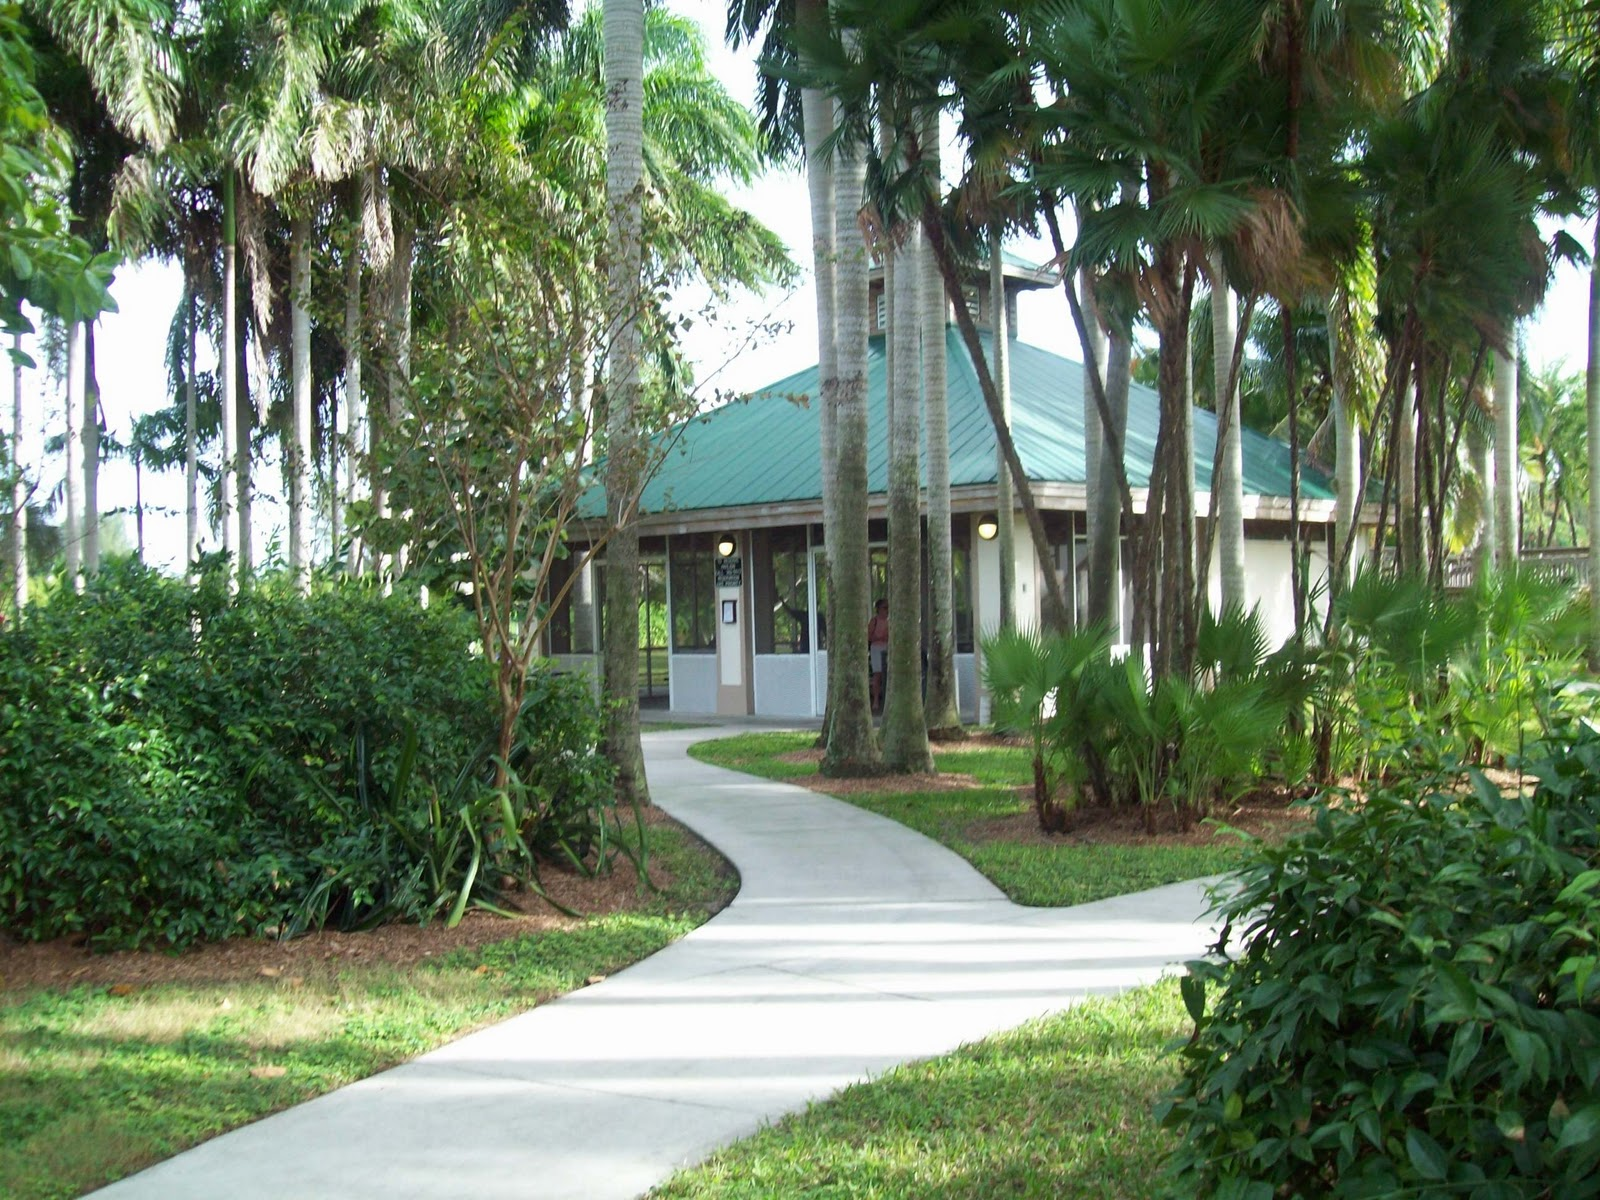 Family Fun Spots In Florida Palma Sola Botanical Gardens And Robinson 39 S Preserve Free